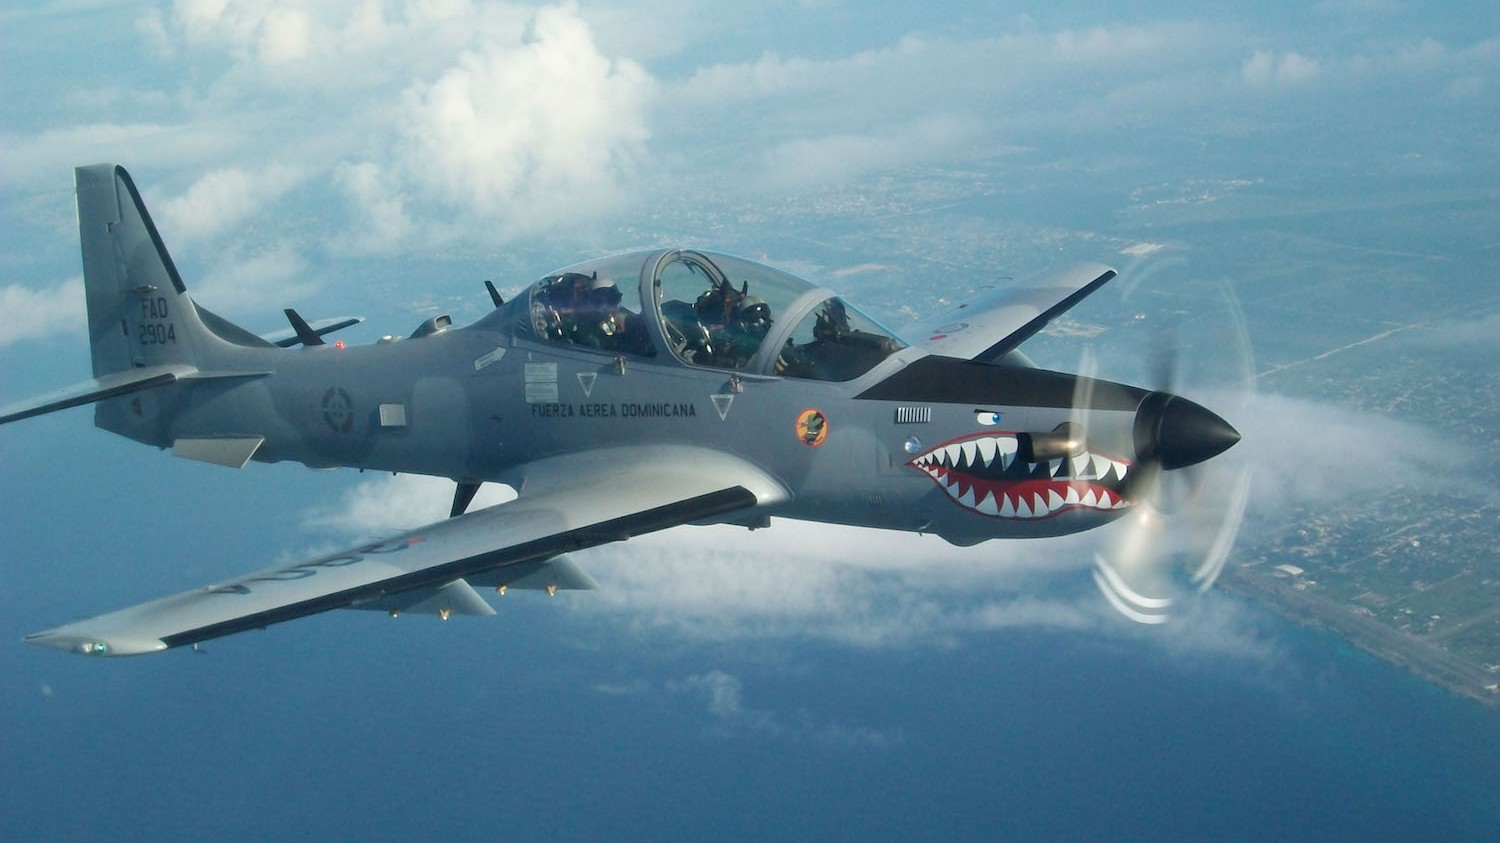 The WWII-Era Plane Giving the F-35 a Run for Its Money